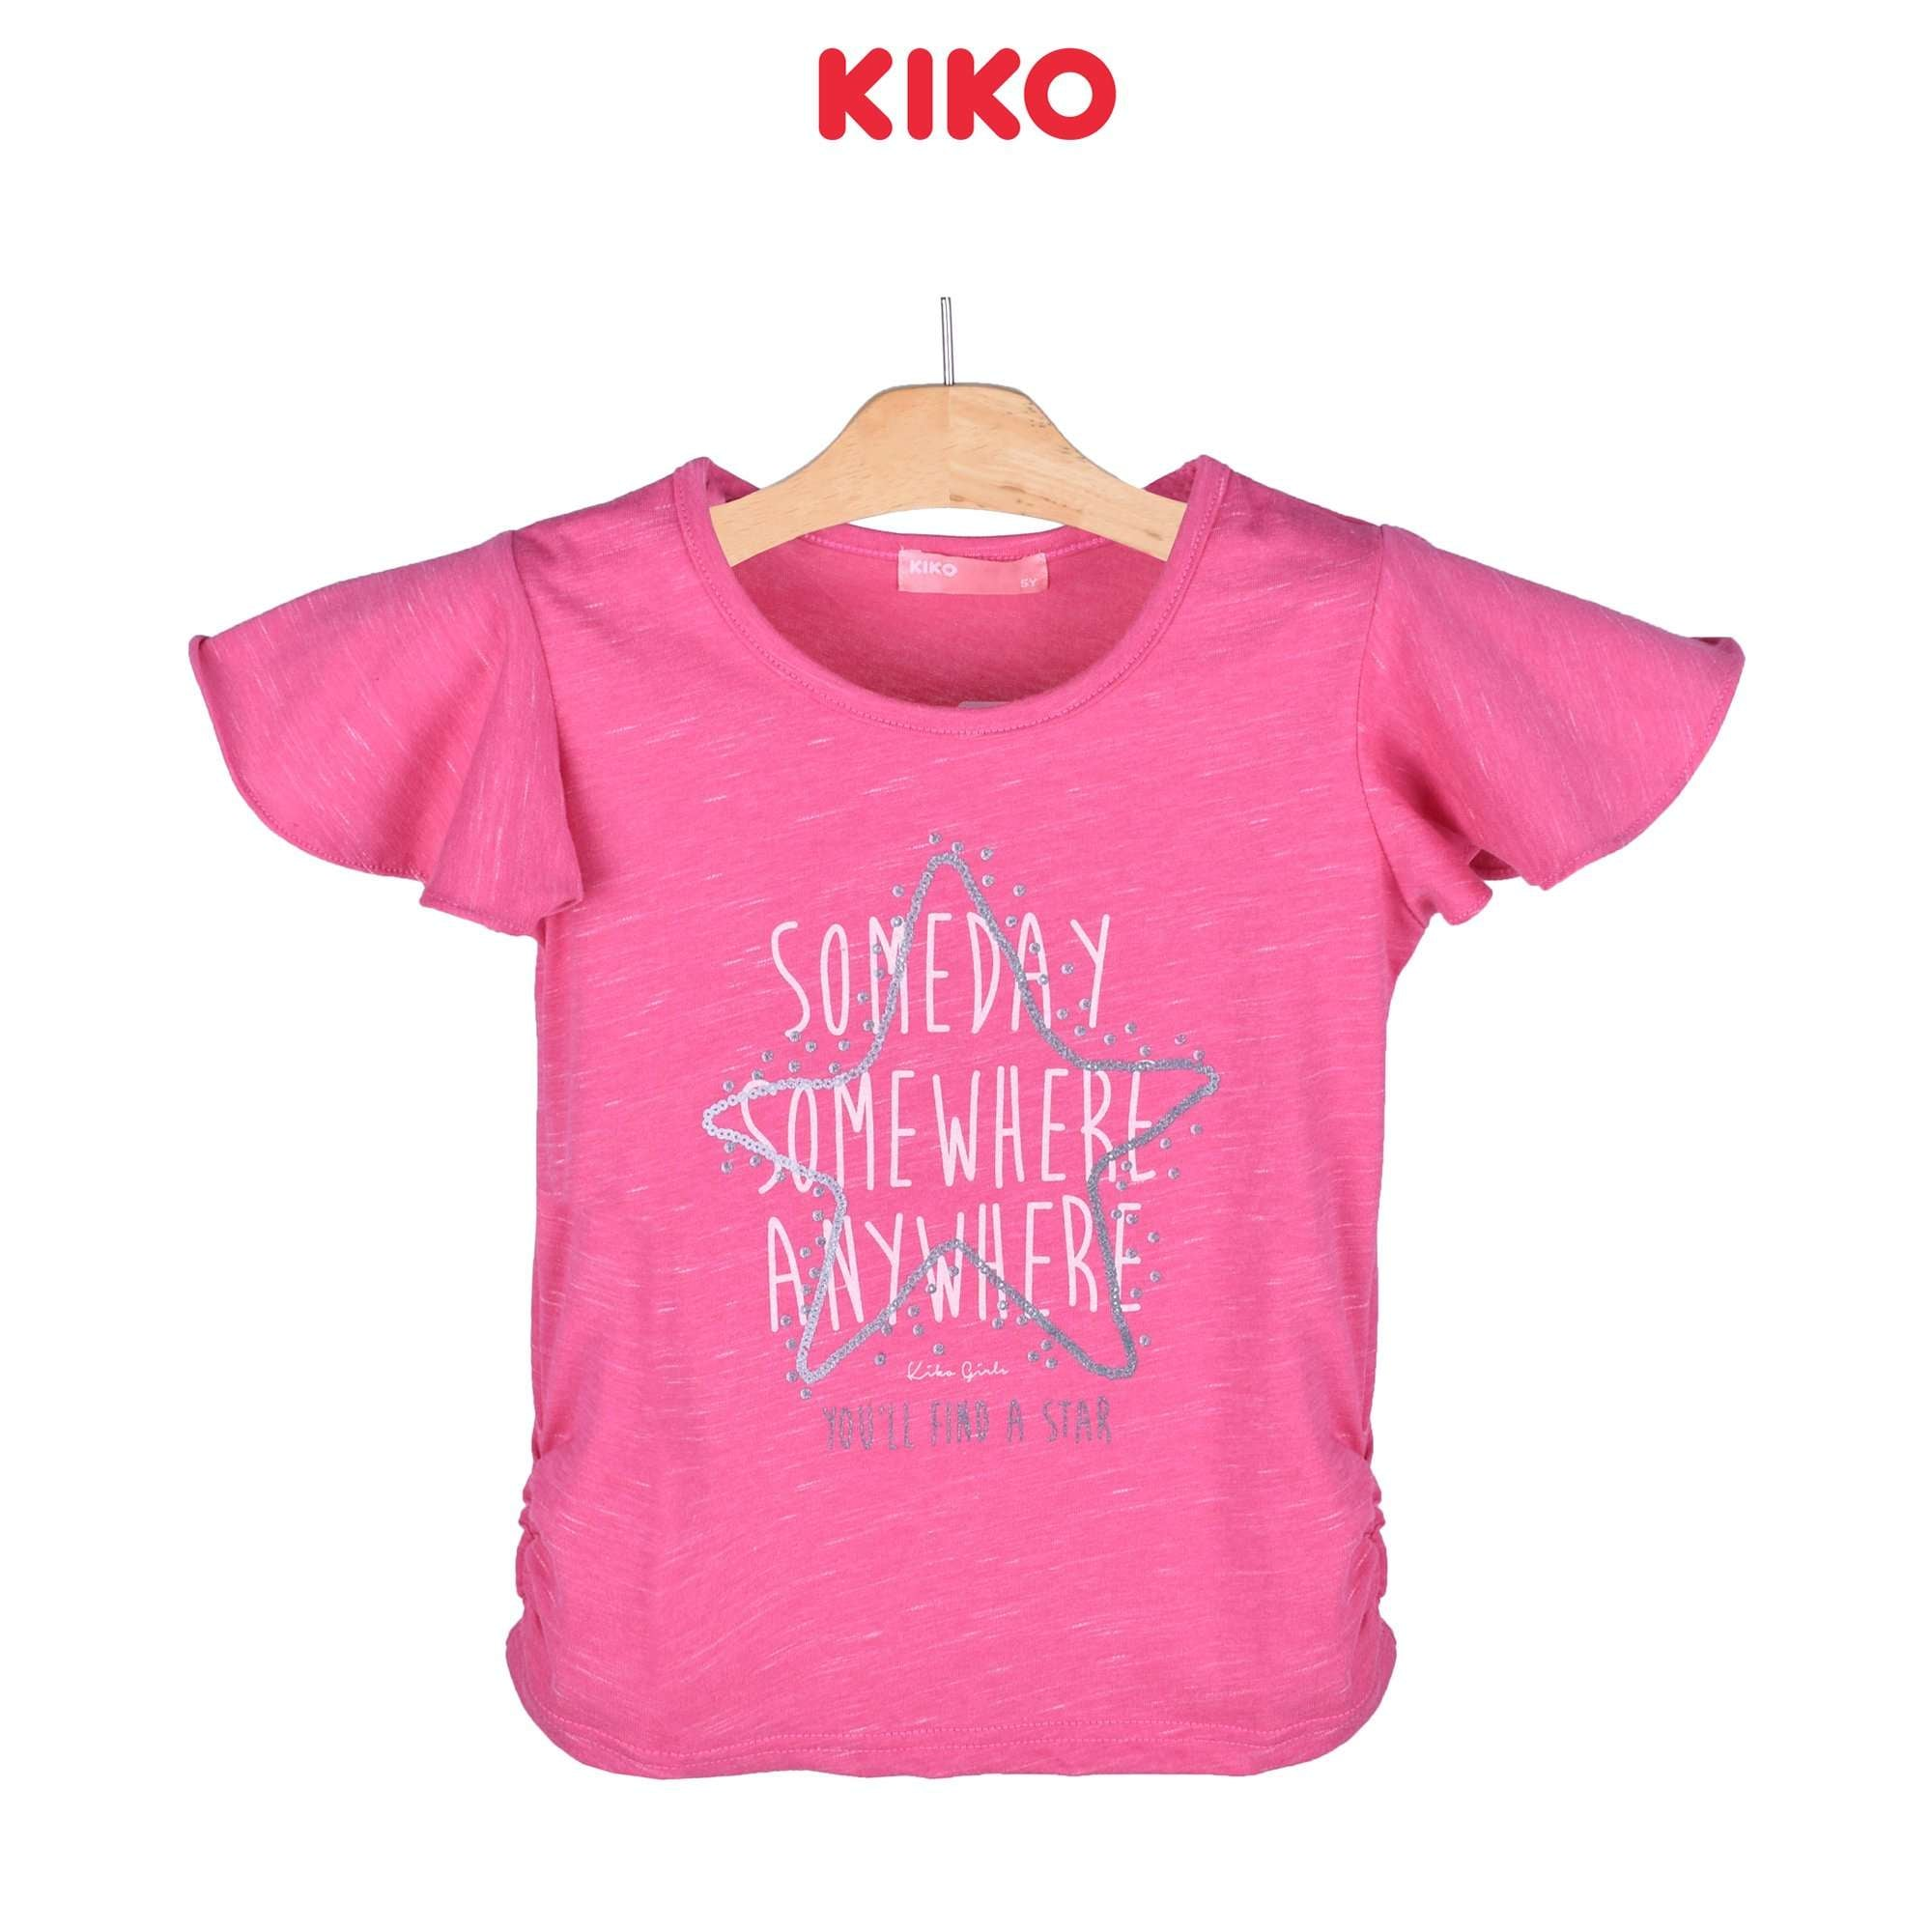 KIKO Girl Short Sleeve Tee 135065-111 : Buy KIKO online at CMG.MY